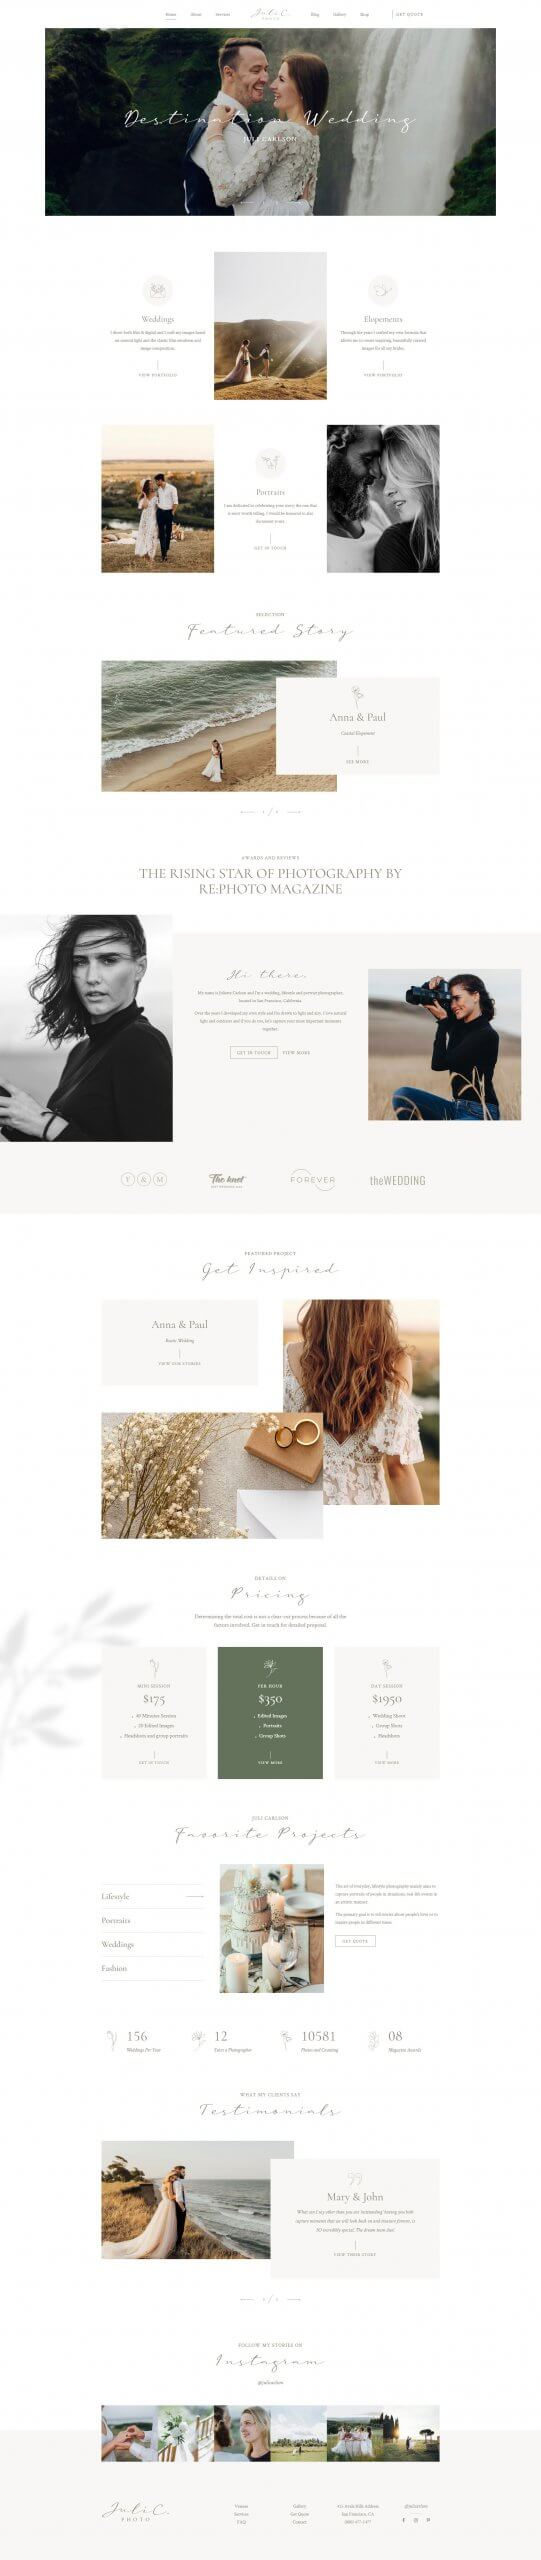 http://avala.bold-themes.com/wp-content/uploads/2021/02/Autumn-Home-02-scaled.jpg